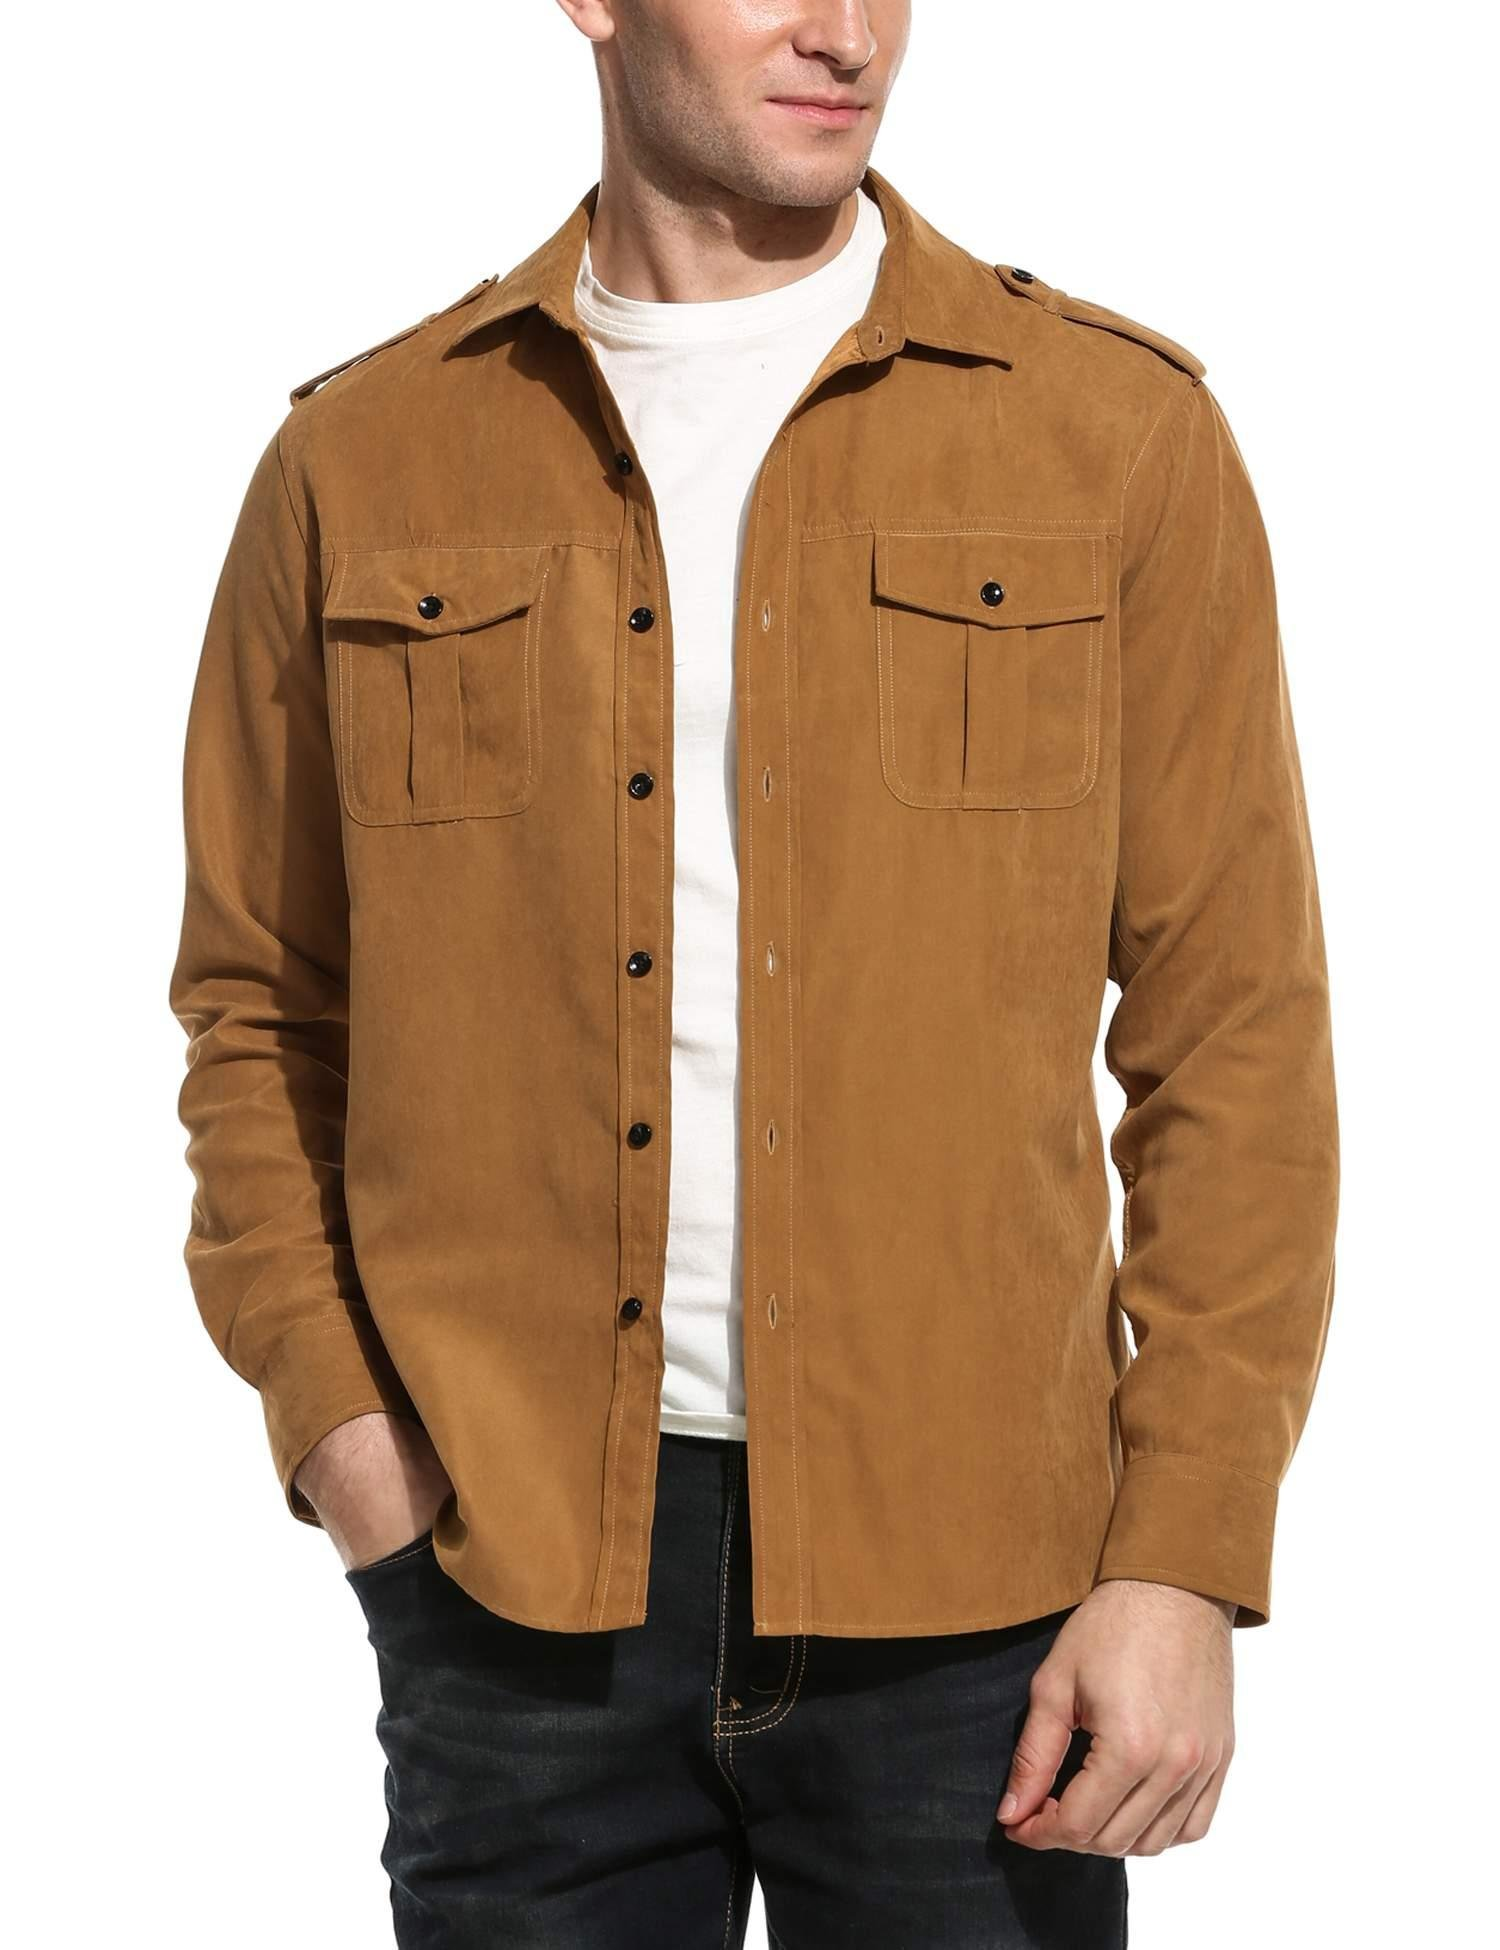 COOFANDY Men's Faux Suede Military Style Casual Long Sleeve Shirt for Travel Camp Outdoor,Camel,XX-Large